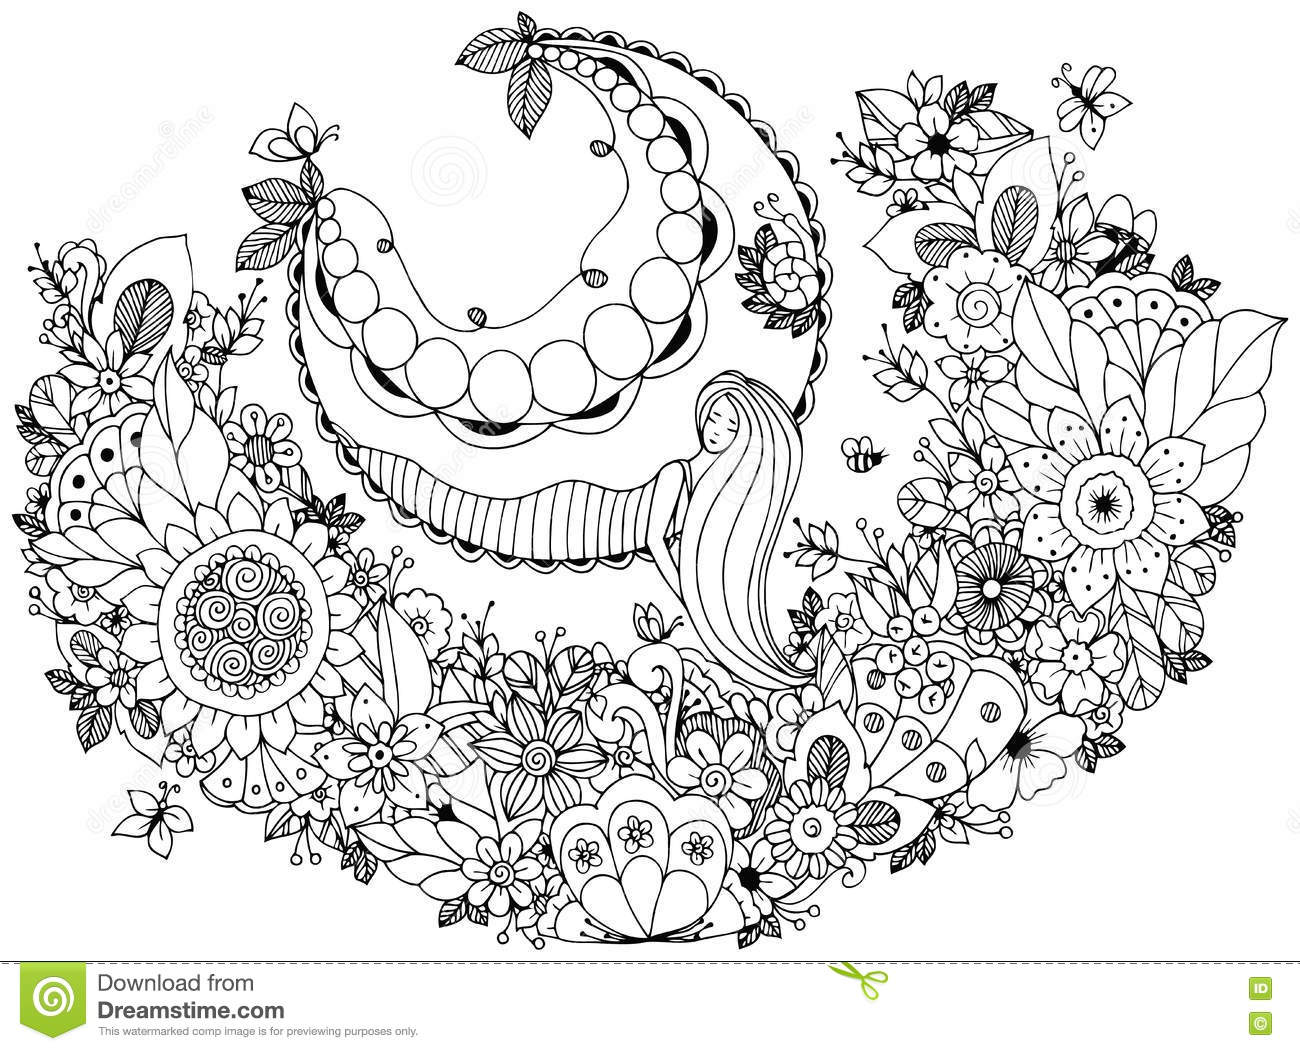 Zen coloring flowers - Vector Illustration Zen Tangle Girl On A Swing In The Flowers Coloring Book Anti Stress